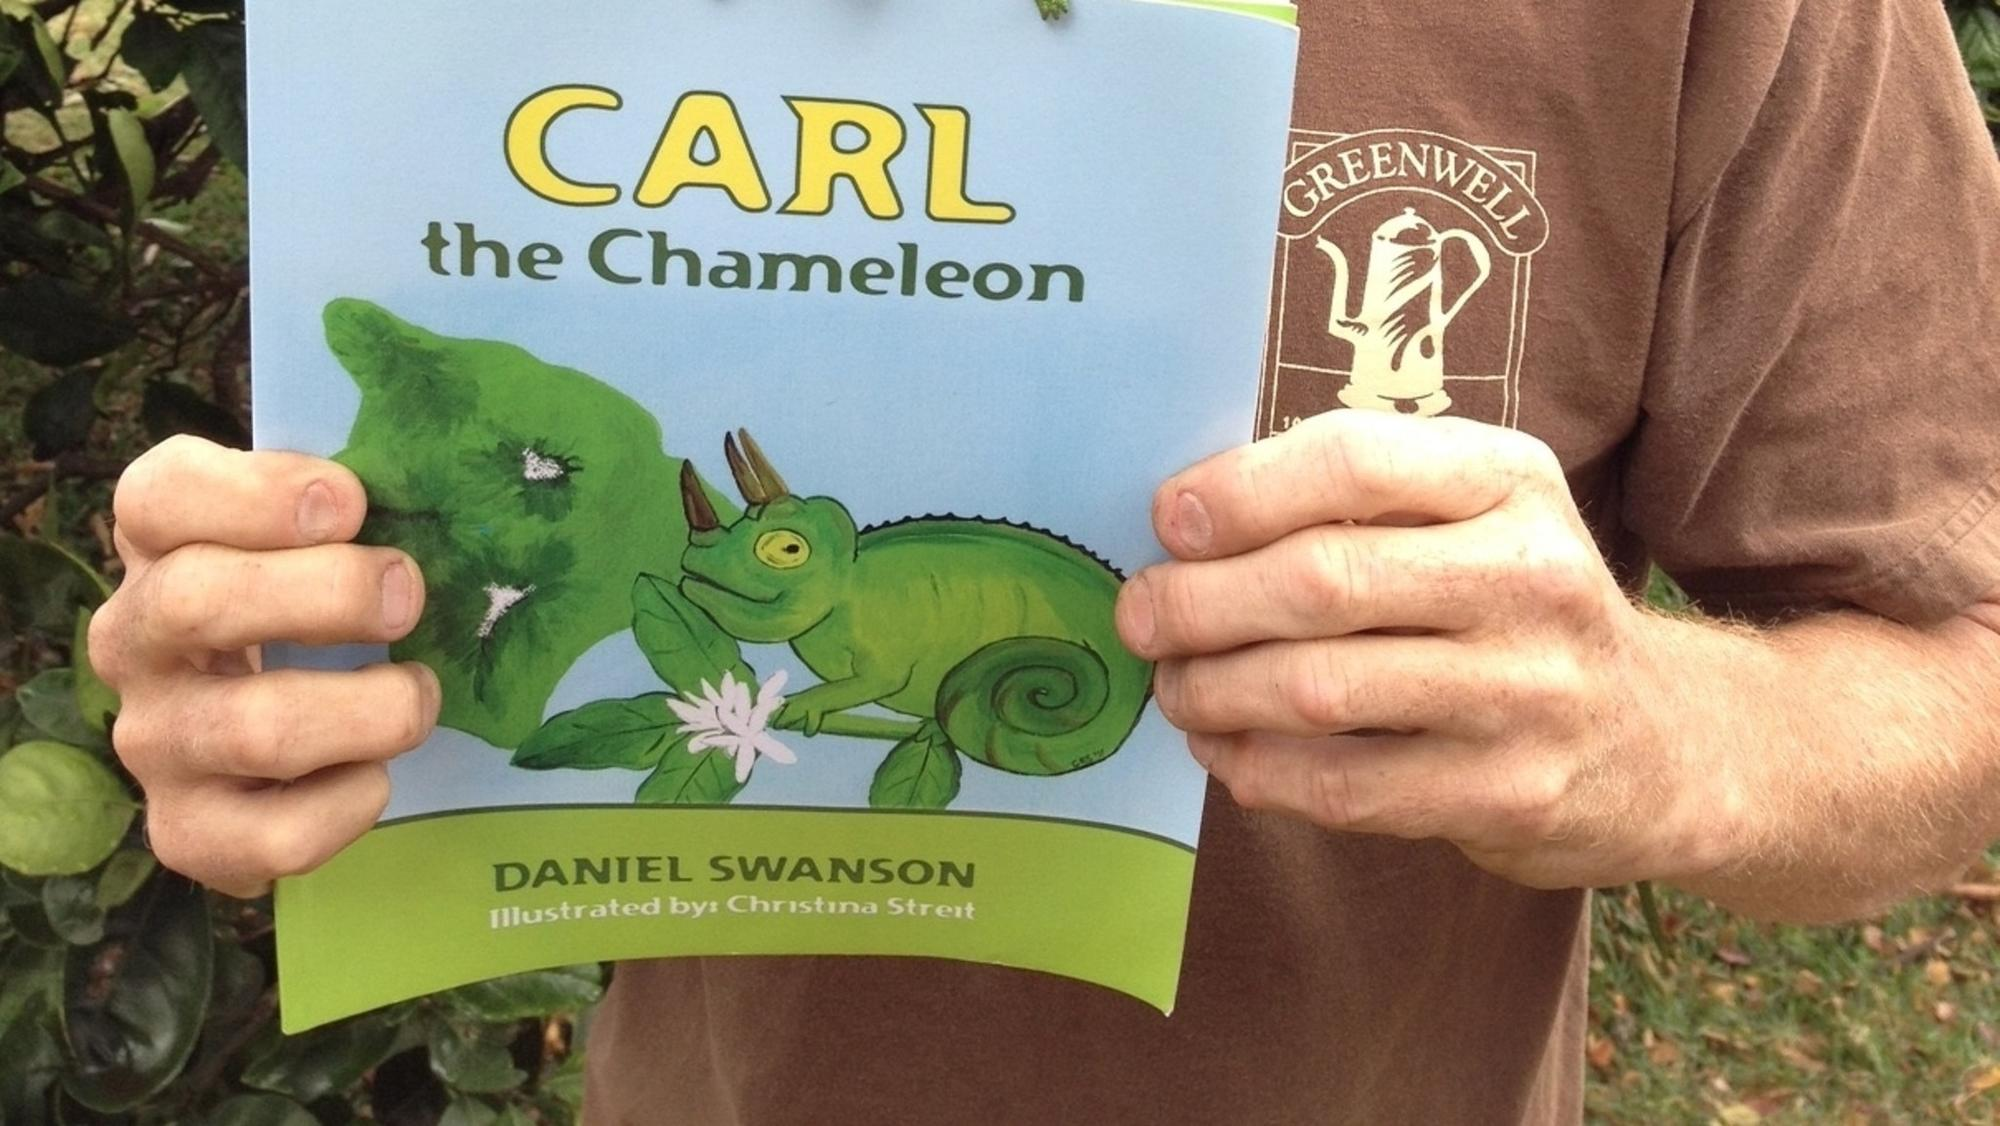 Author Daniel Swanson holds a copy of his first children's book, a work of fiction about the very real